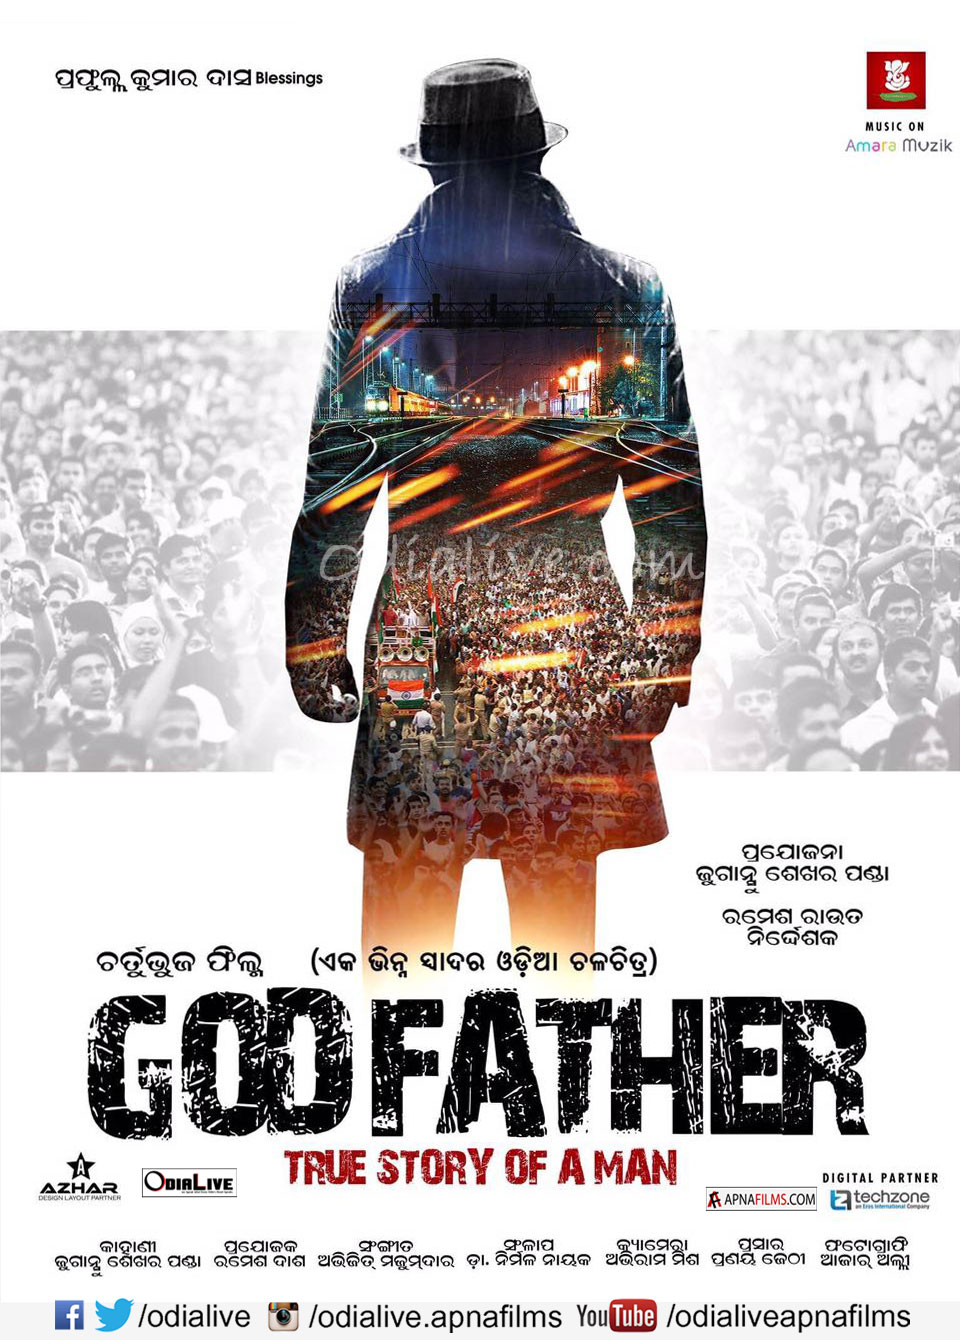 Watch God Father Odia Film trailer 7